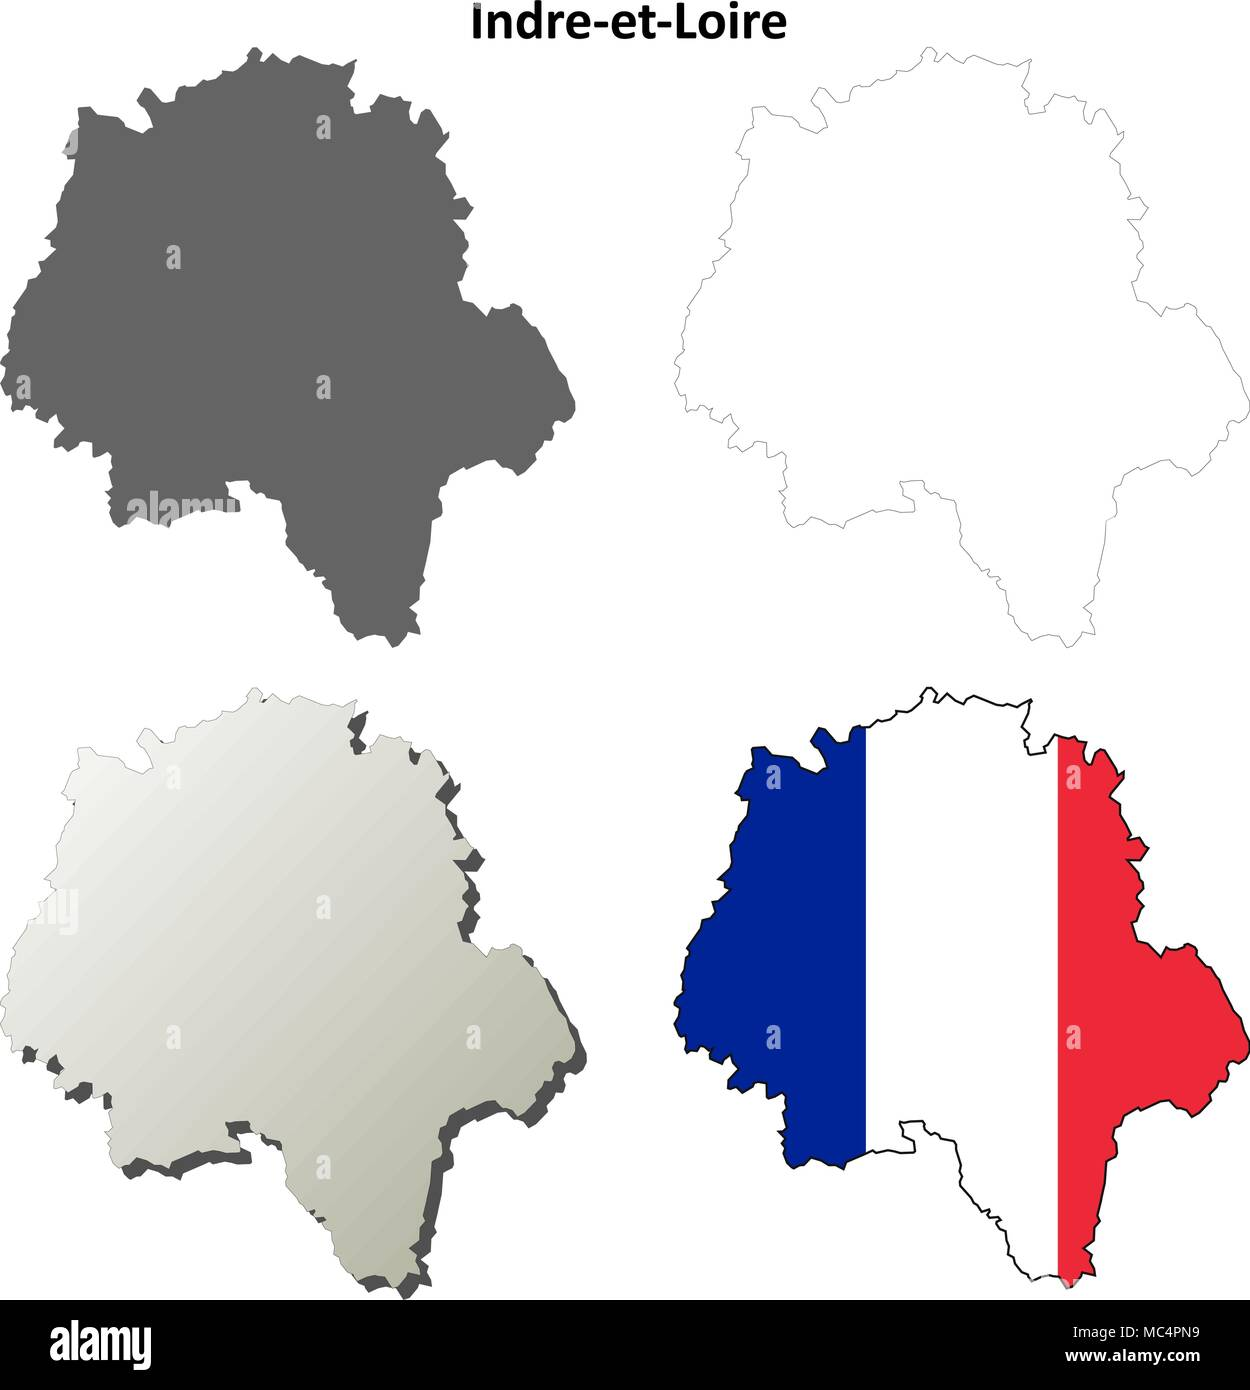 Indre-et-Loire, Centre outline map set - Stock Vector